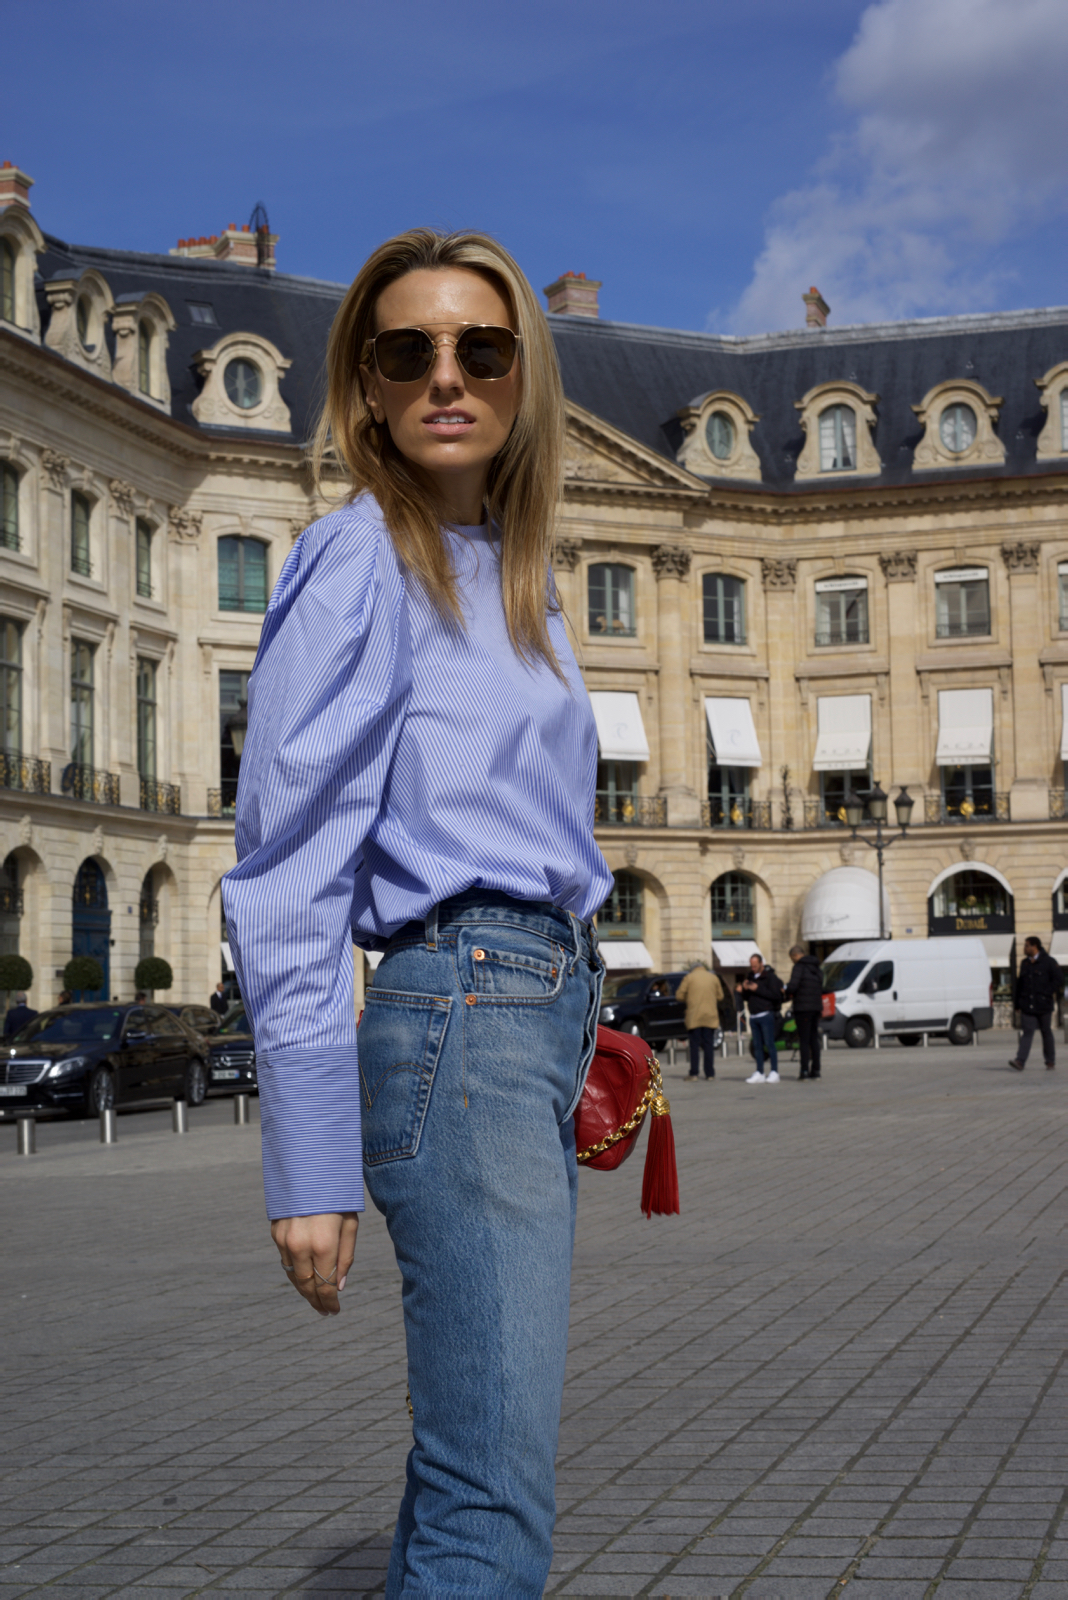 Paris Fashion Week Street Style, PFW, Striped Poplin shirt, Levi's, Chanel